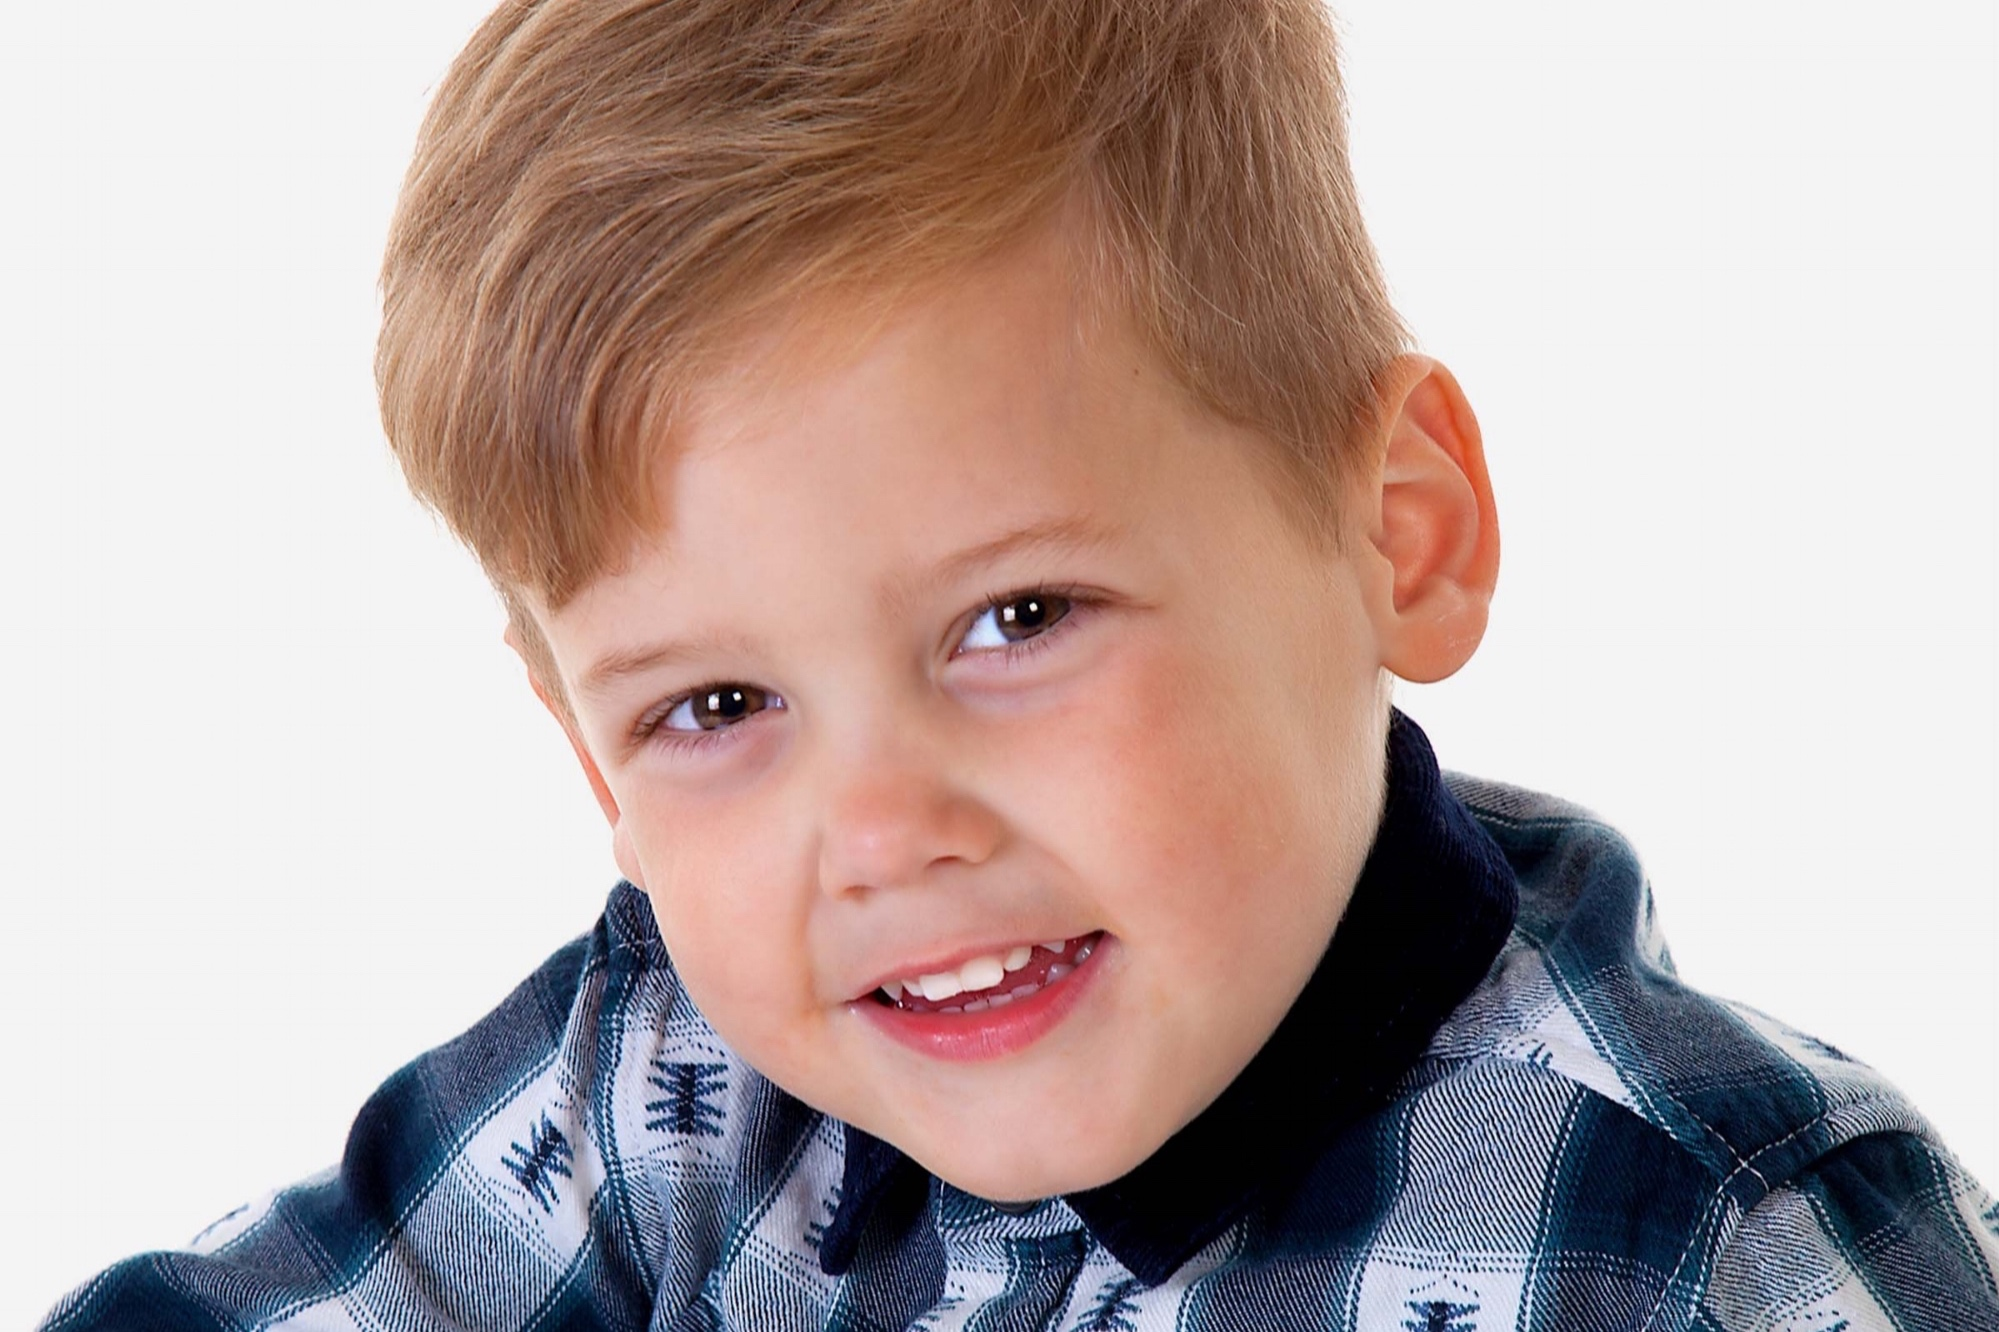 CHILD PHOTOGRAPHY - CAPTURING PERSONALITIES - Our studio has a very relaxed atmosphere where families and children…. READ MORE